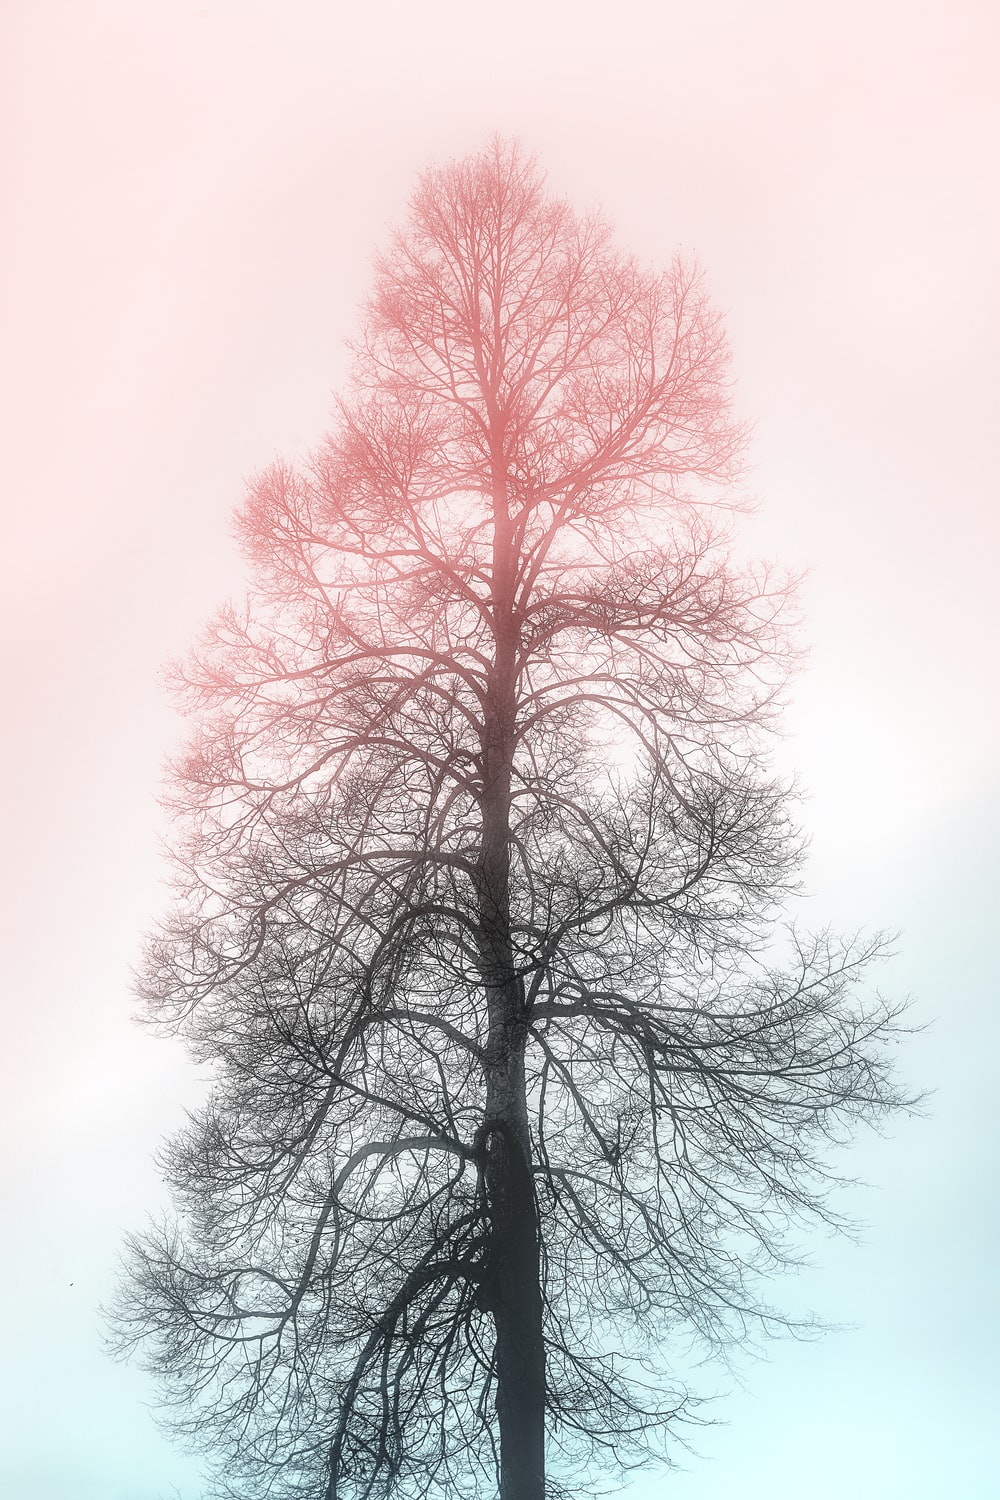 silhouette of withered tree